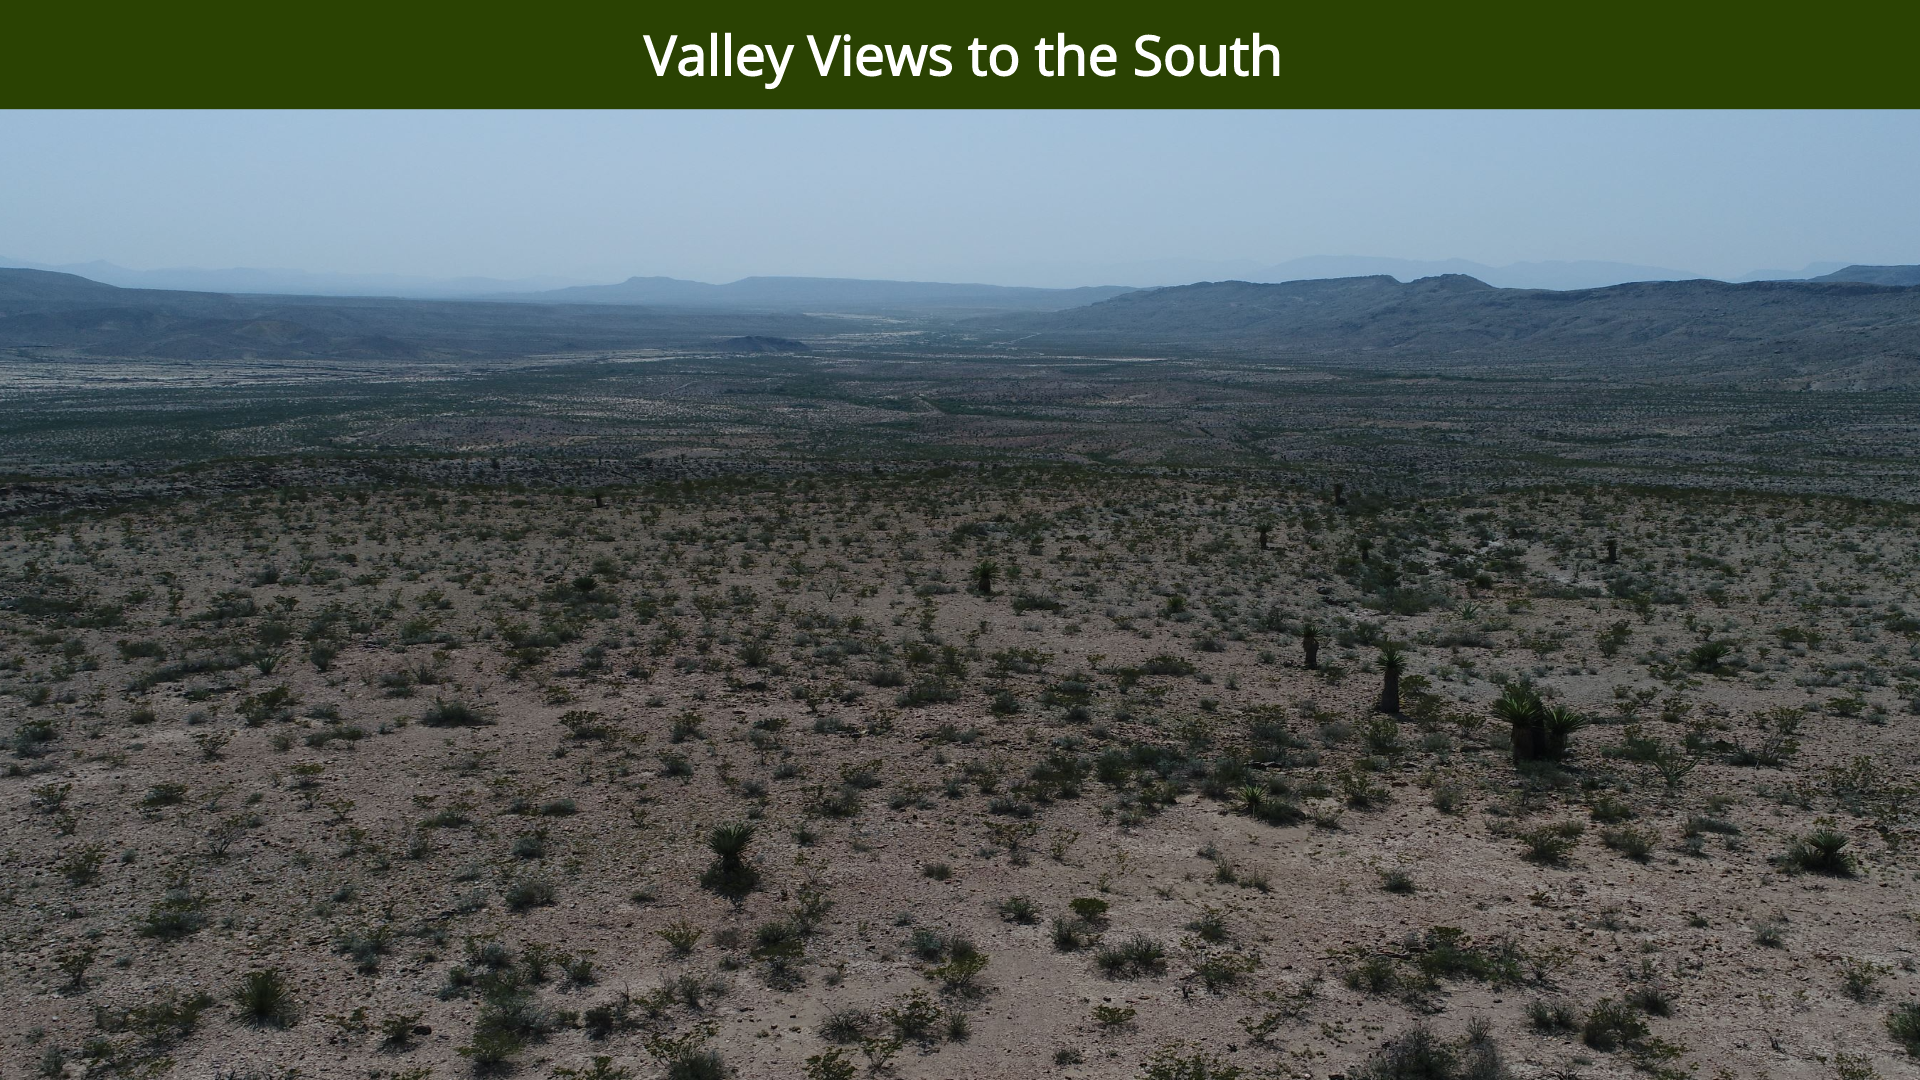 Valley Views to the South